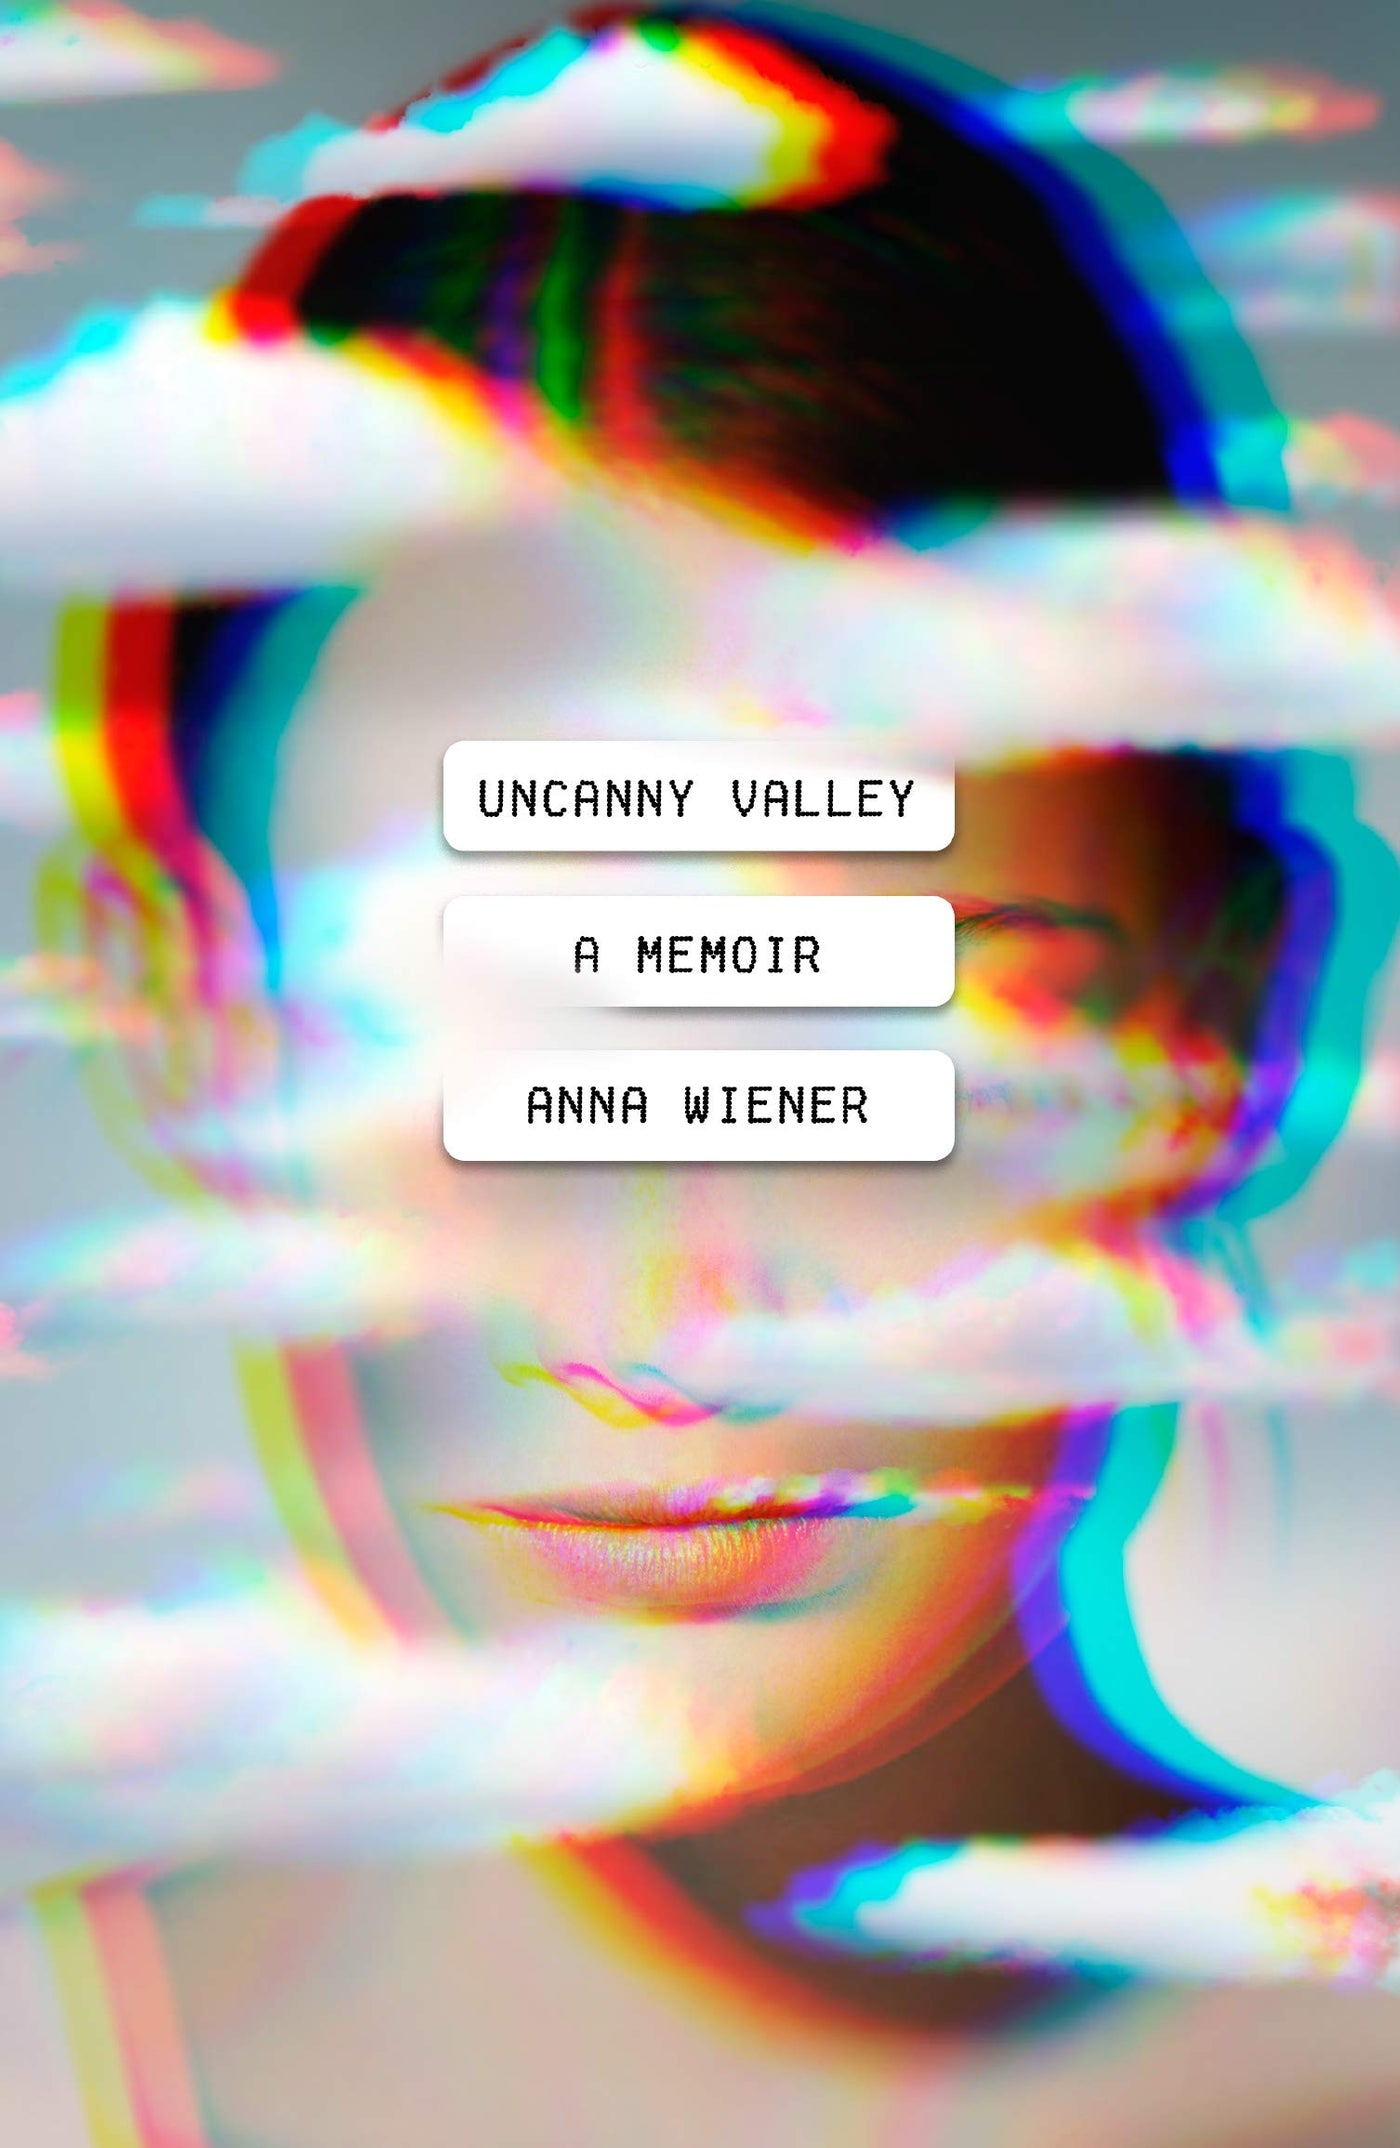 Uncanny Valley: A Memoir by Anna Wiener